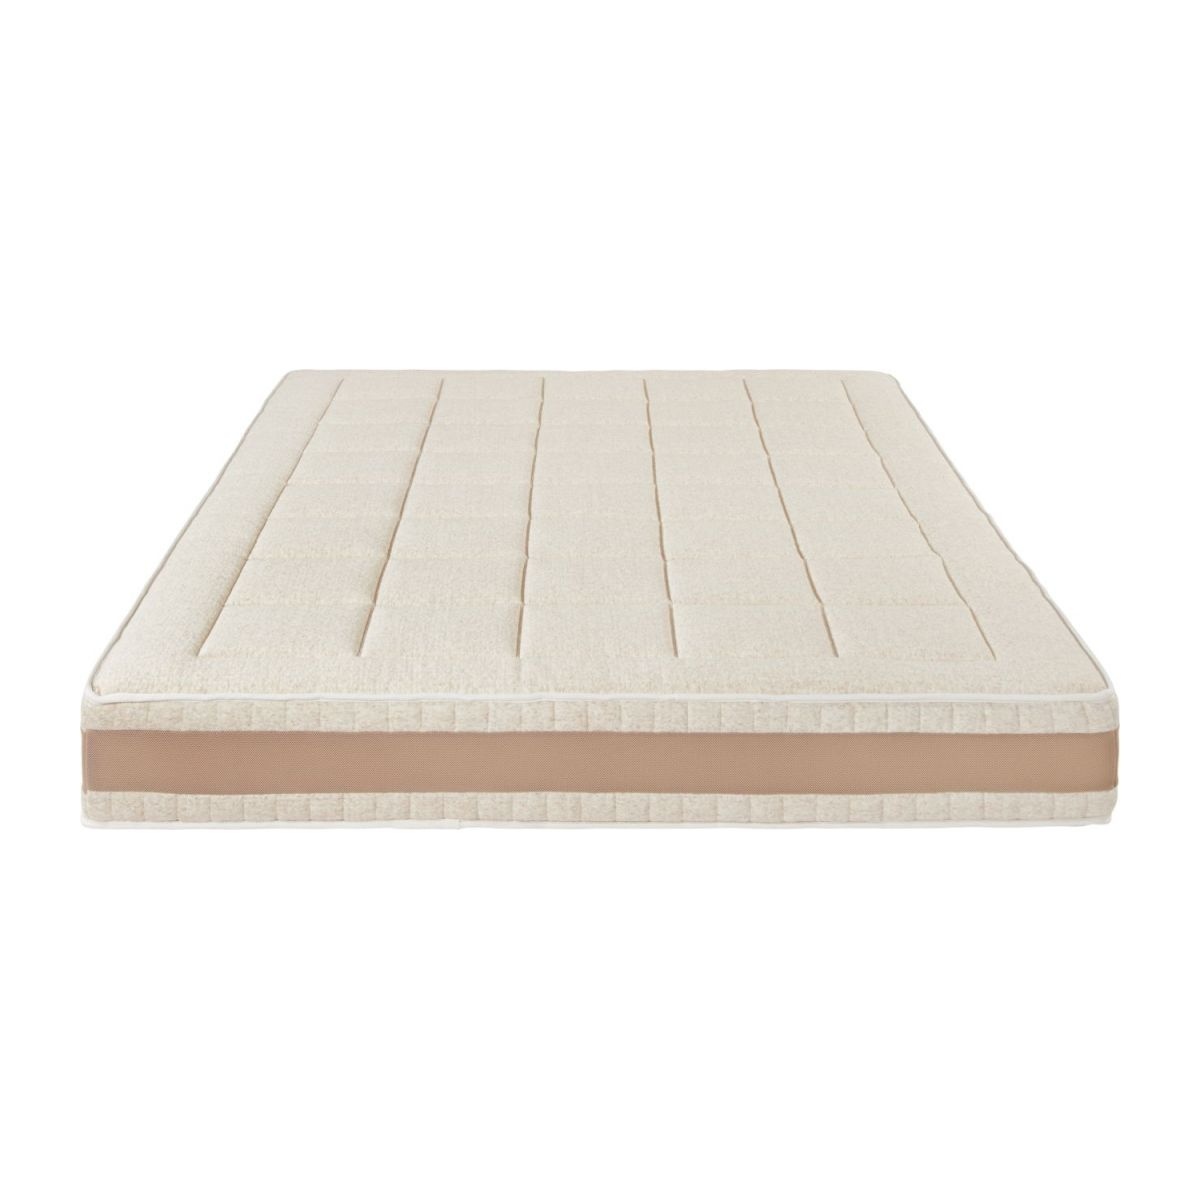 Latex mattress , width 23 cm, 160x200cm - firm support n°2